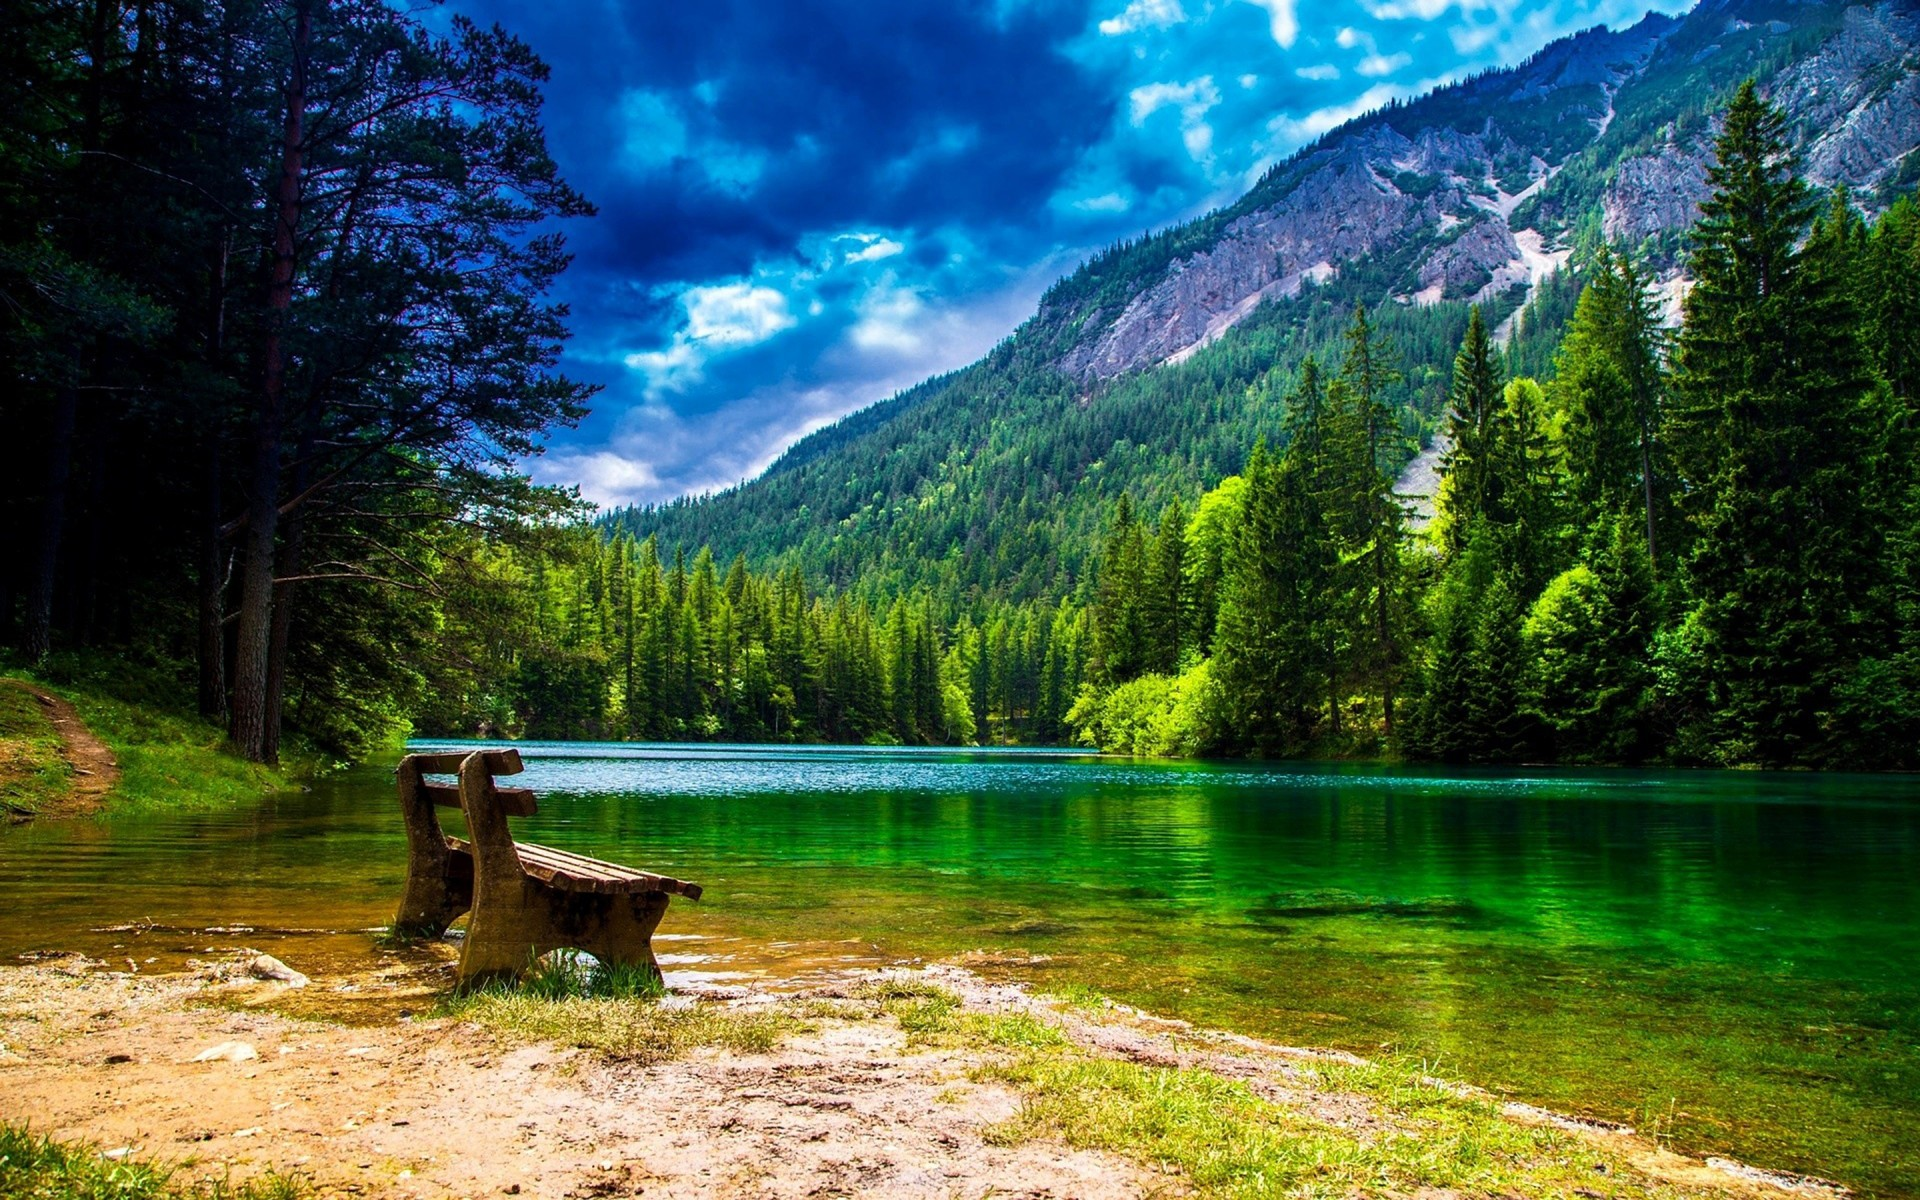 Wonderful Mountain Landscape With Green Pine Forest - Wonderful Of Green Nature - HD Wallpaper